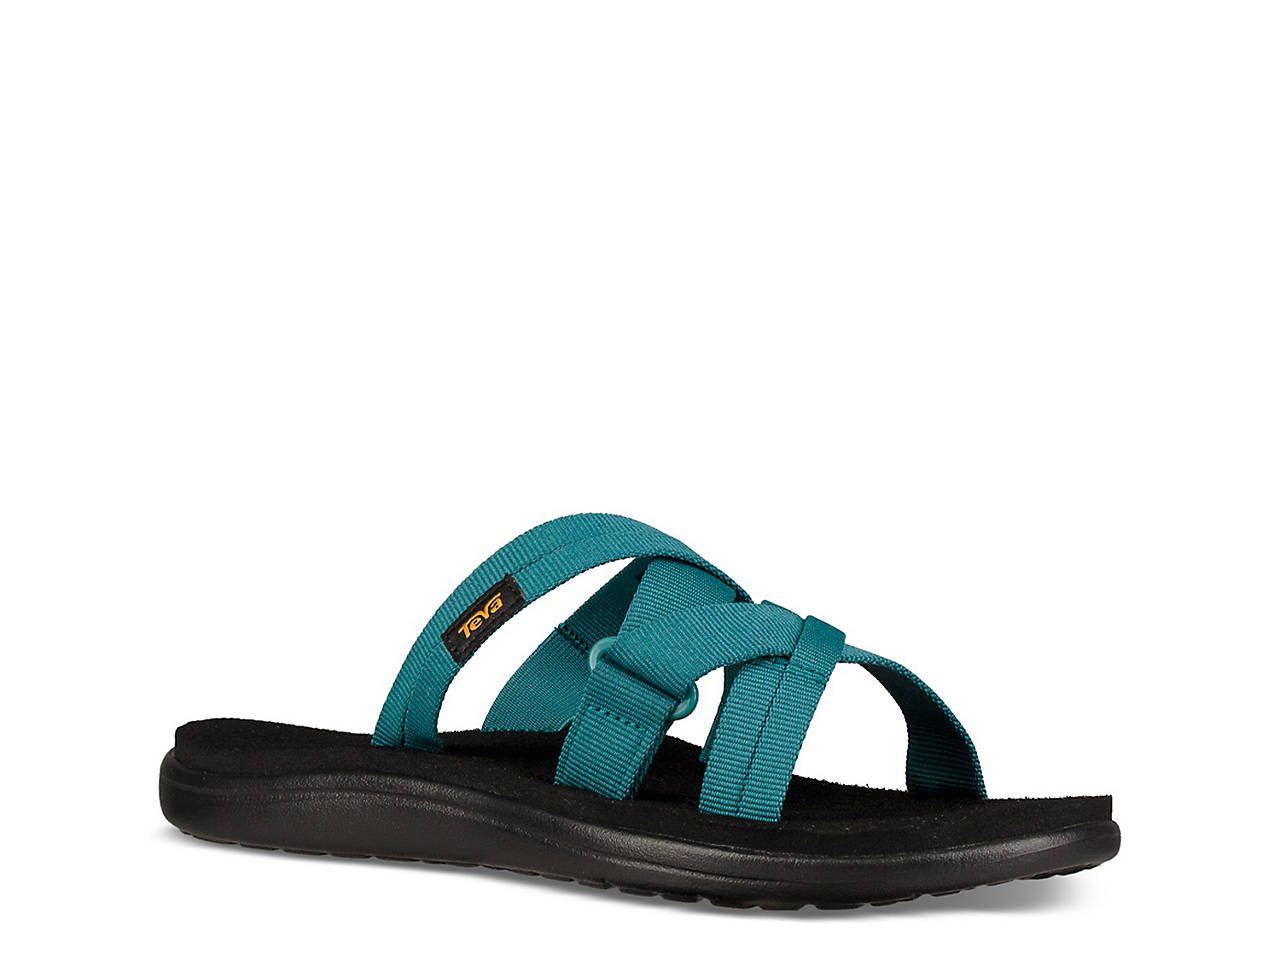 9dd8a64c51a3 Teva Voya Sandal Women s Shoes